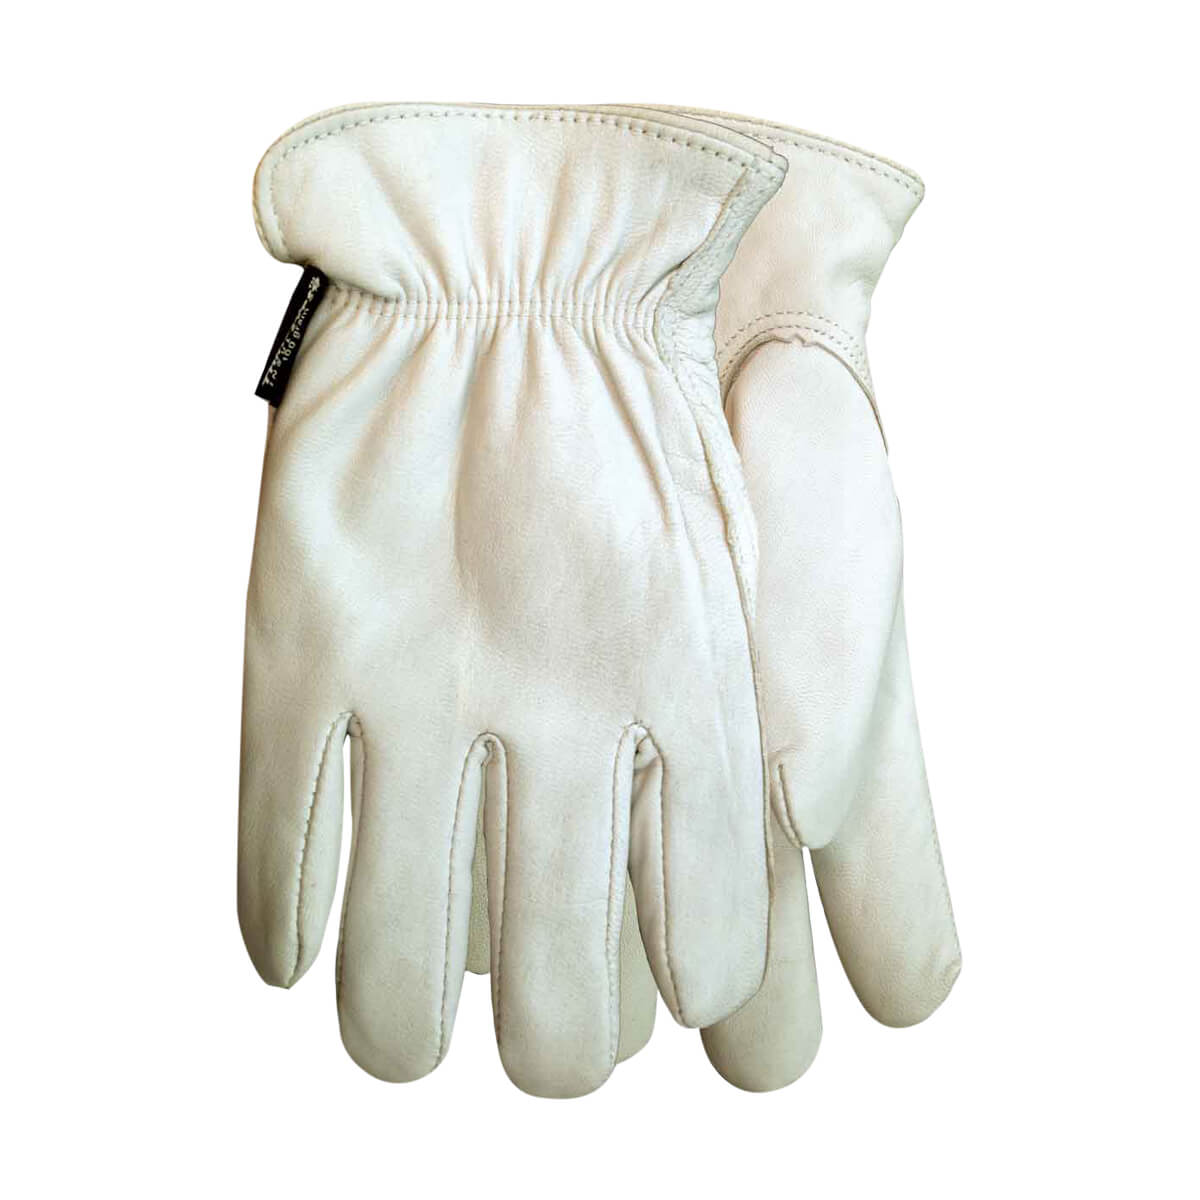 3M® Insulated Goat Skin Leather Gloves